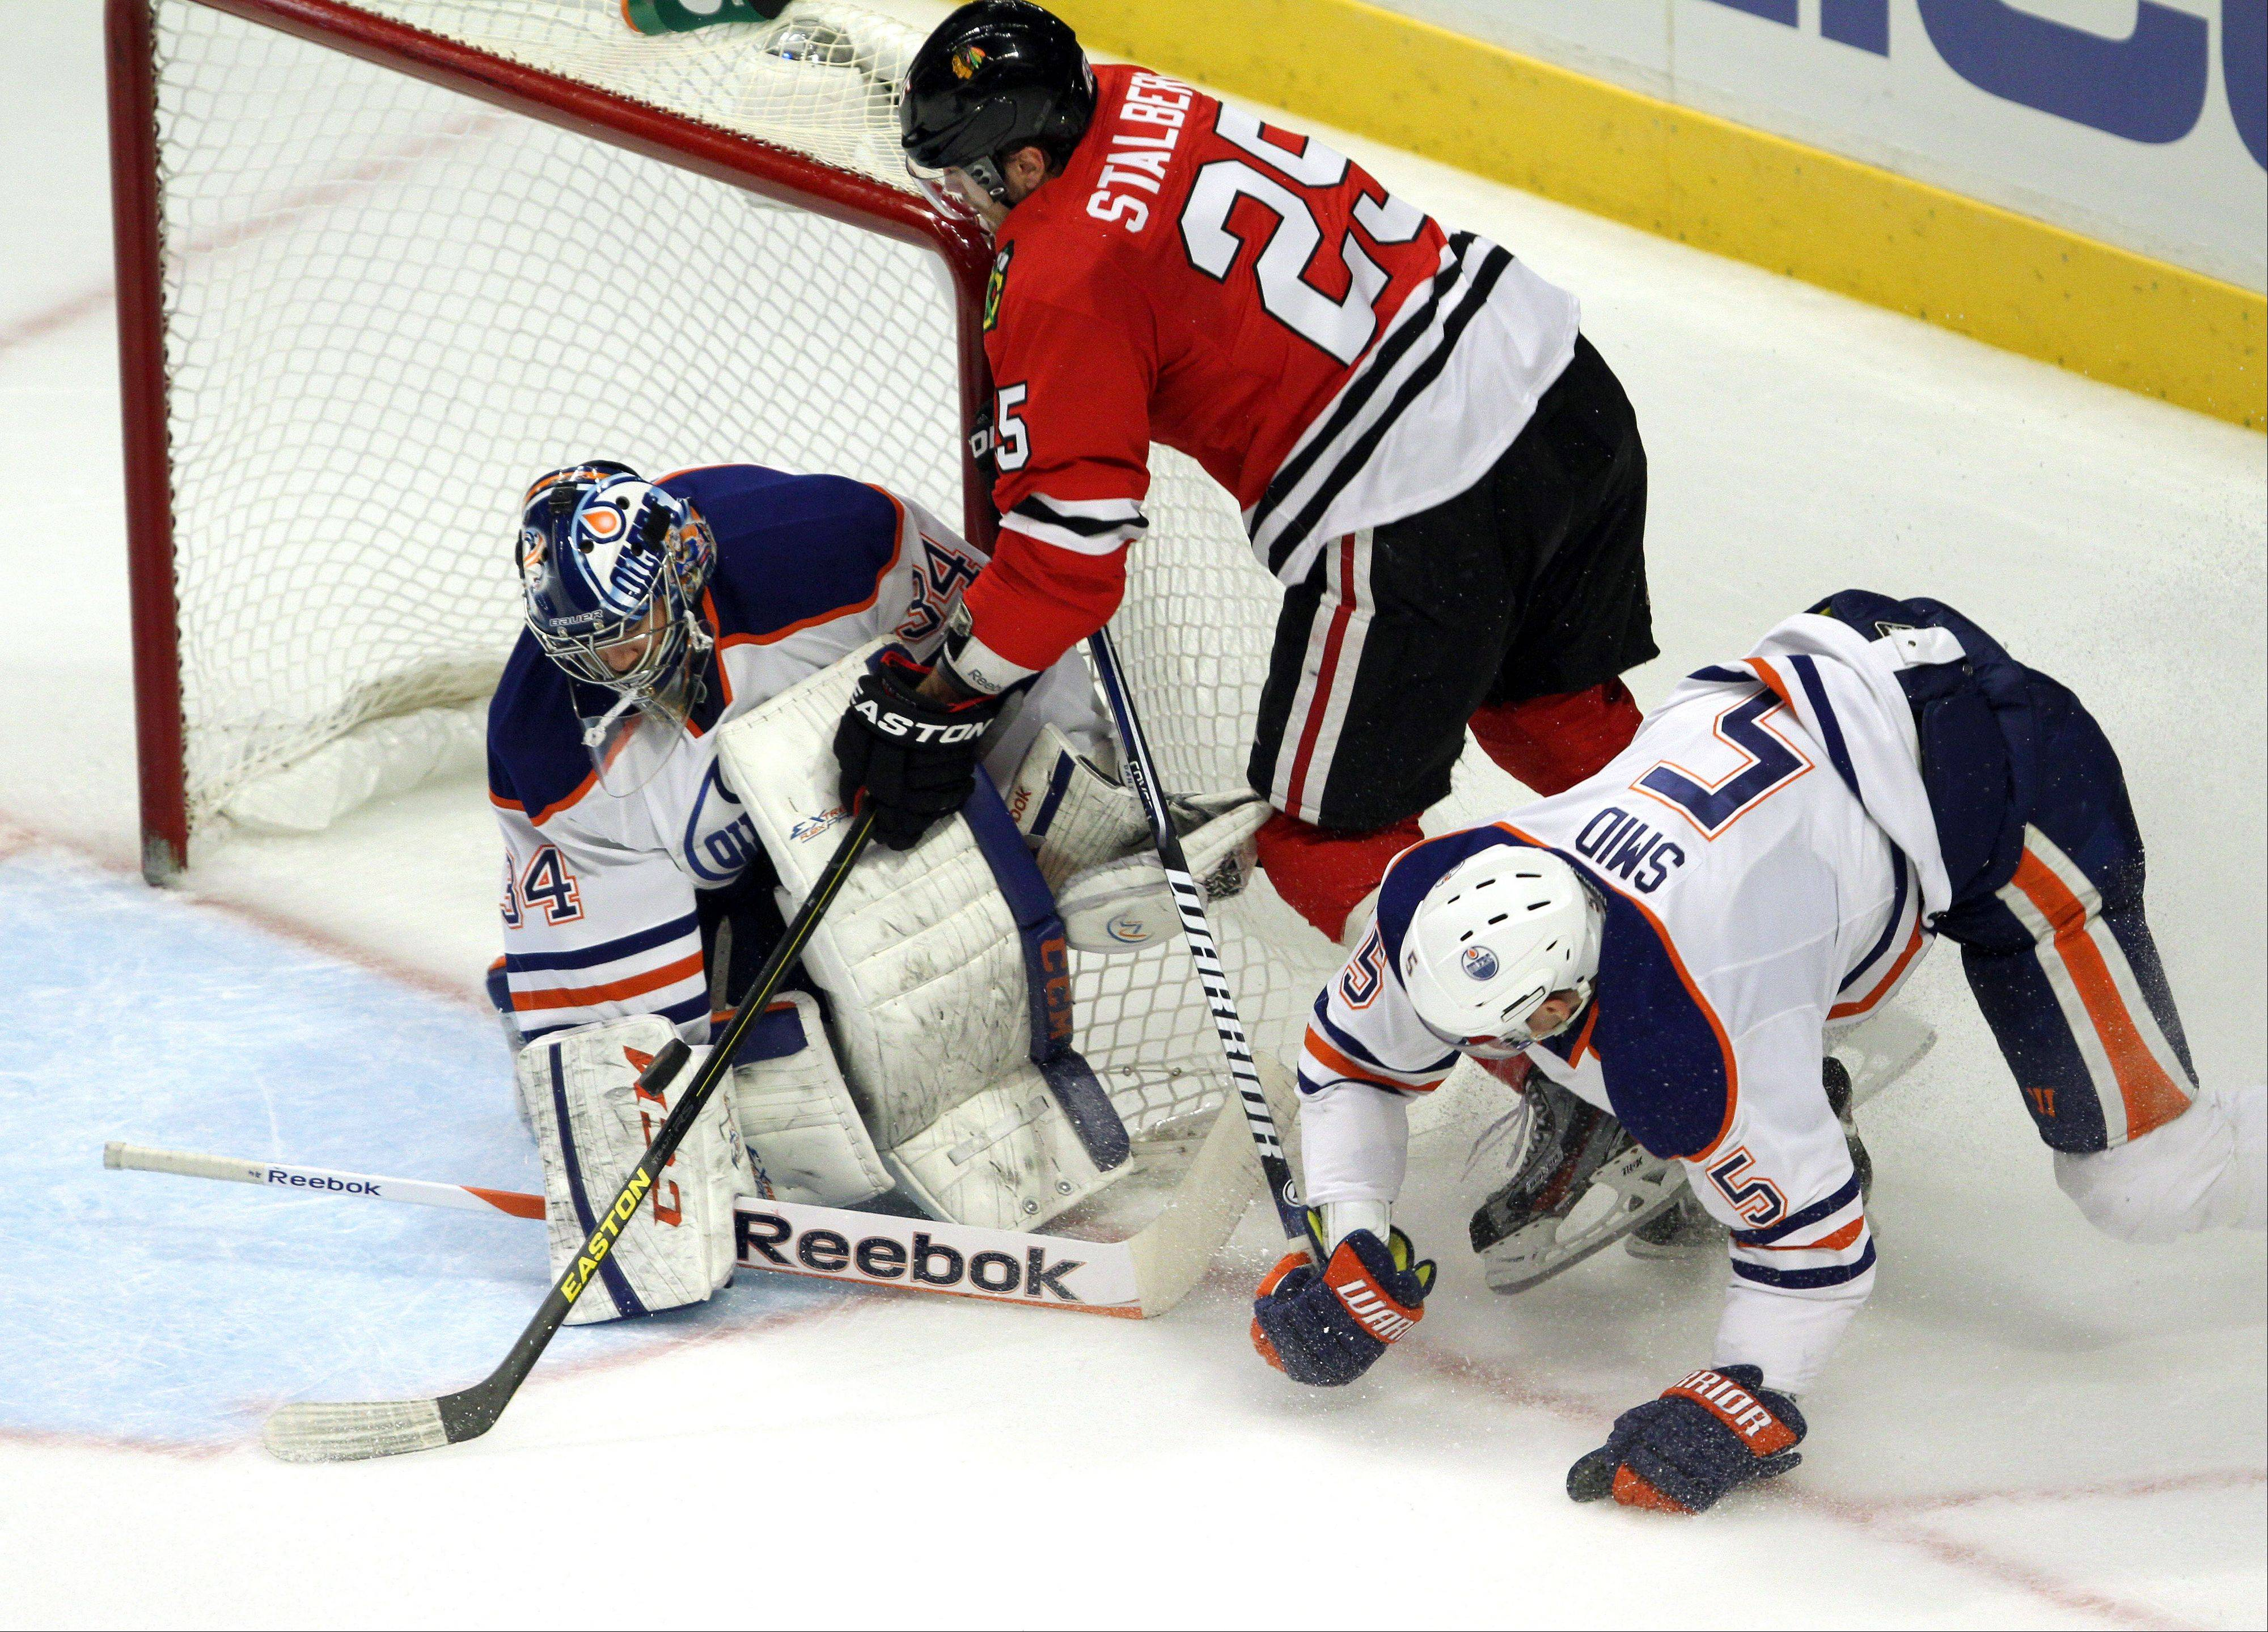 Chicago Blackhawks left wing Viktor Stalberg shoots on Edmonton Oilers goalie Yann Danis during their game Sunday night at the United Center in Chicago.